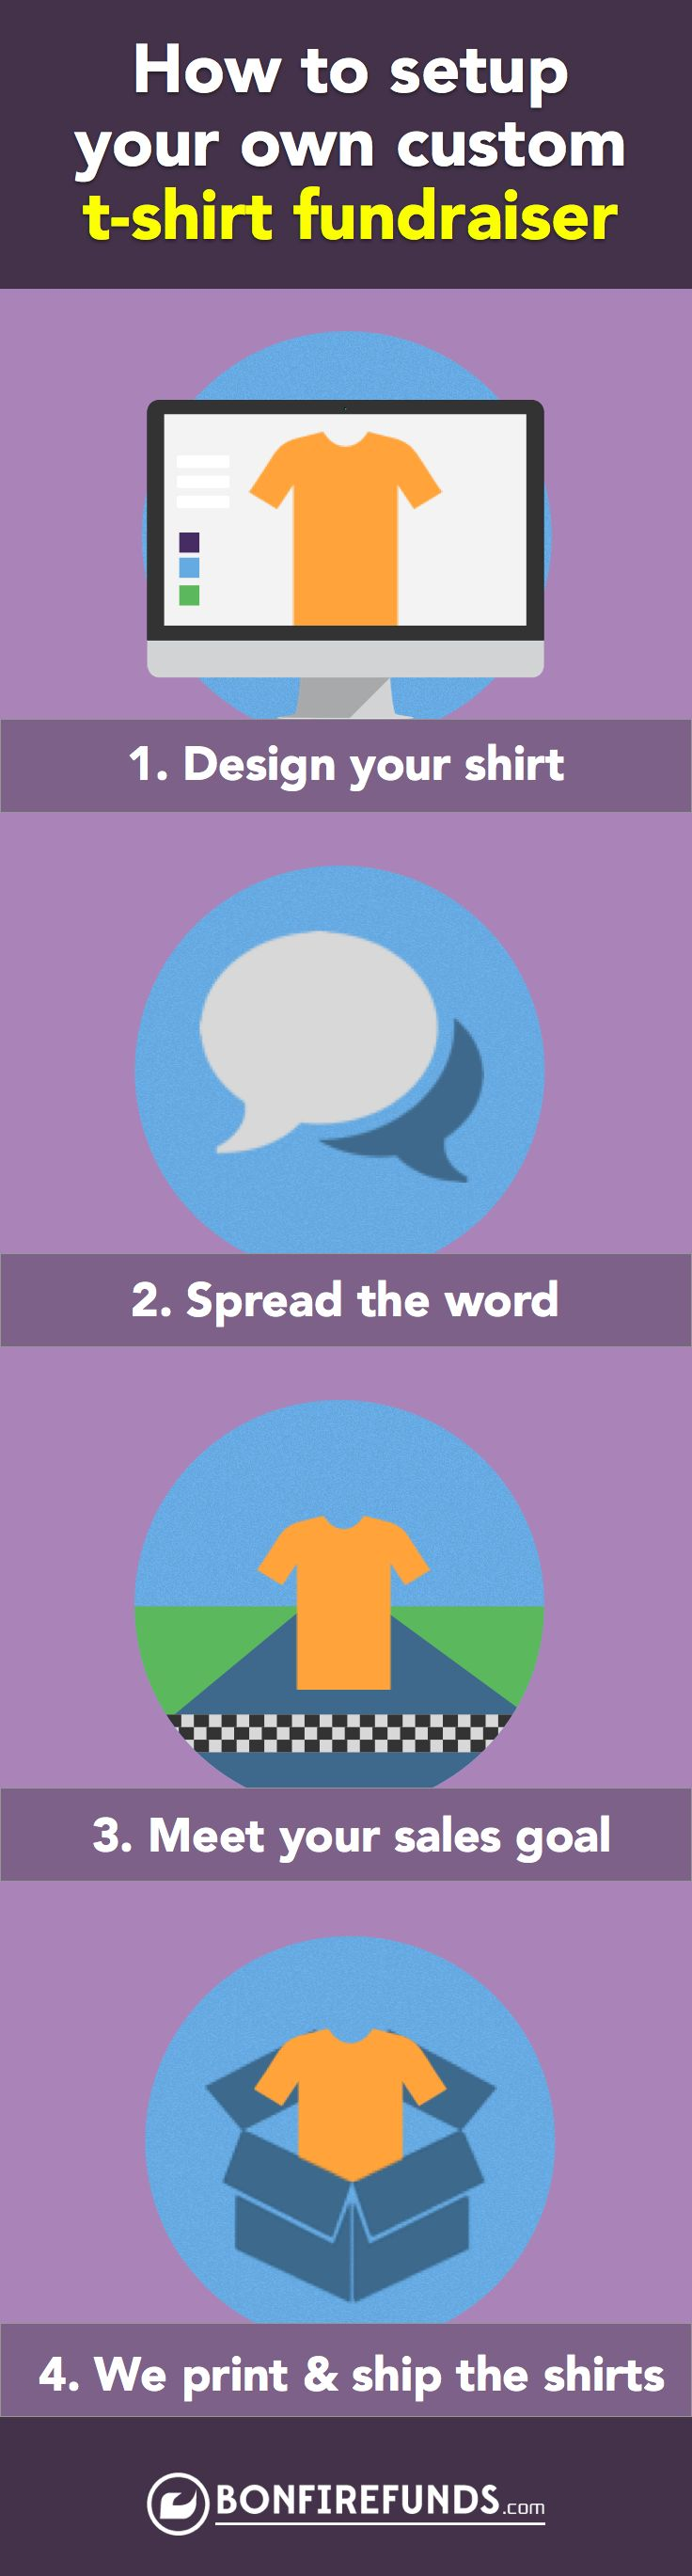 Ever wanted to start your own custom t-shirt #fundraiser? Follow these simple 4 steps to get started!